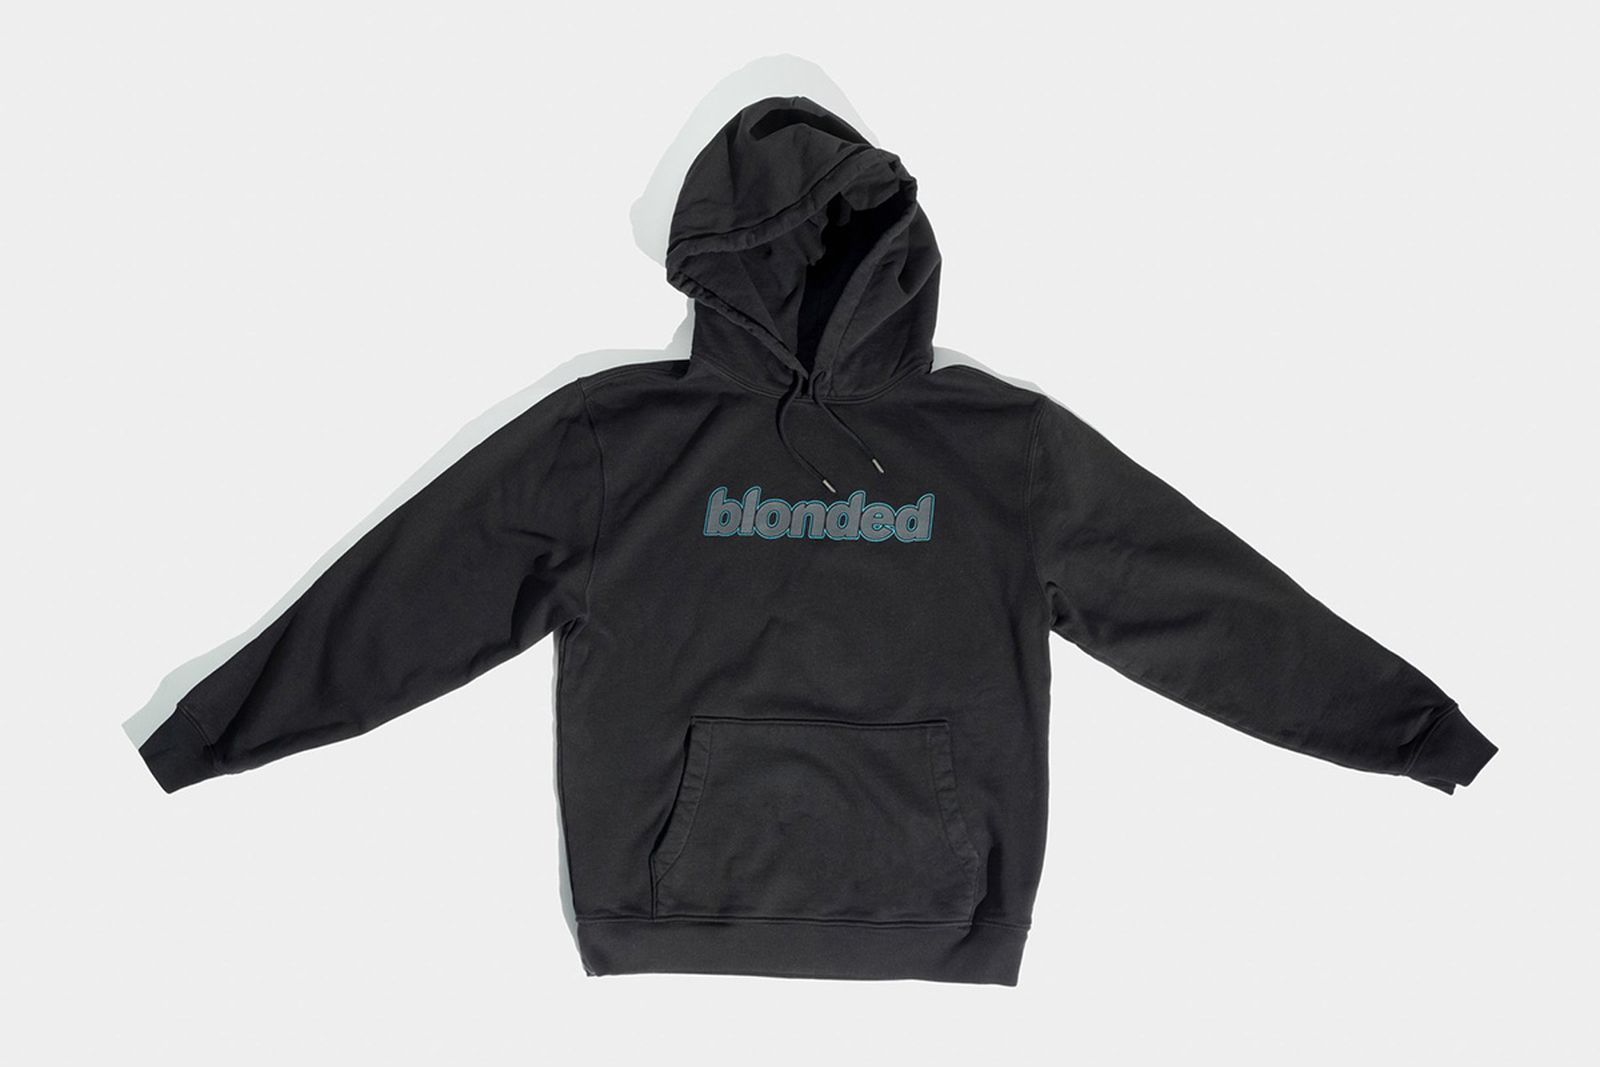 frank-ocean-new-merch-09